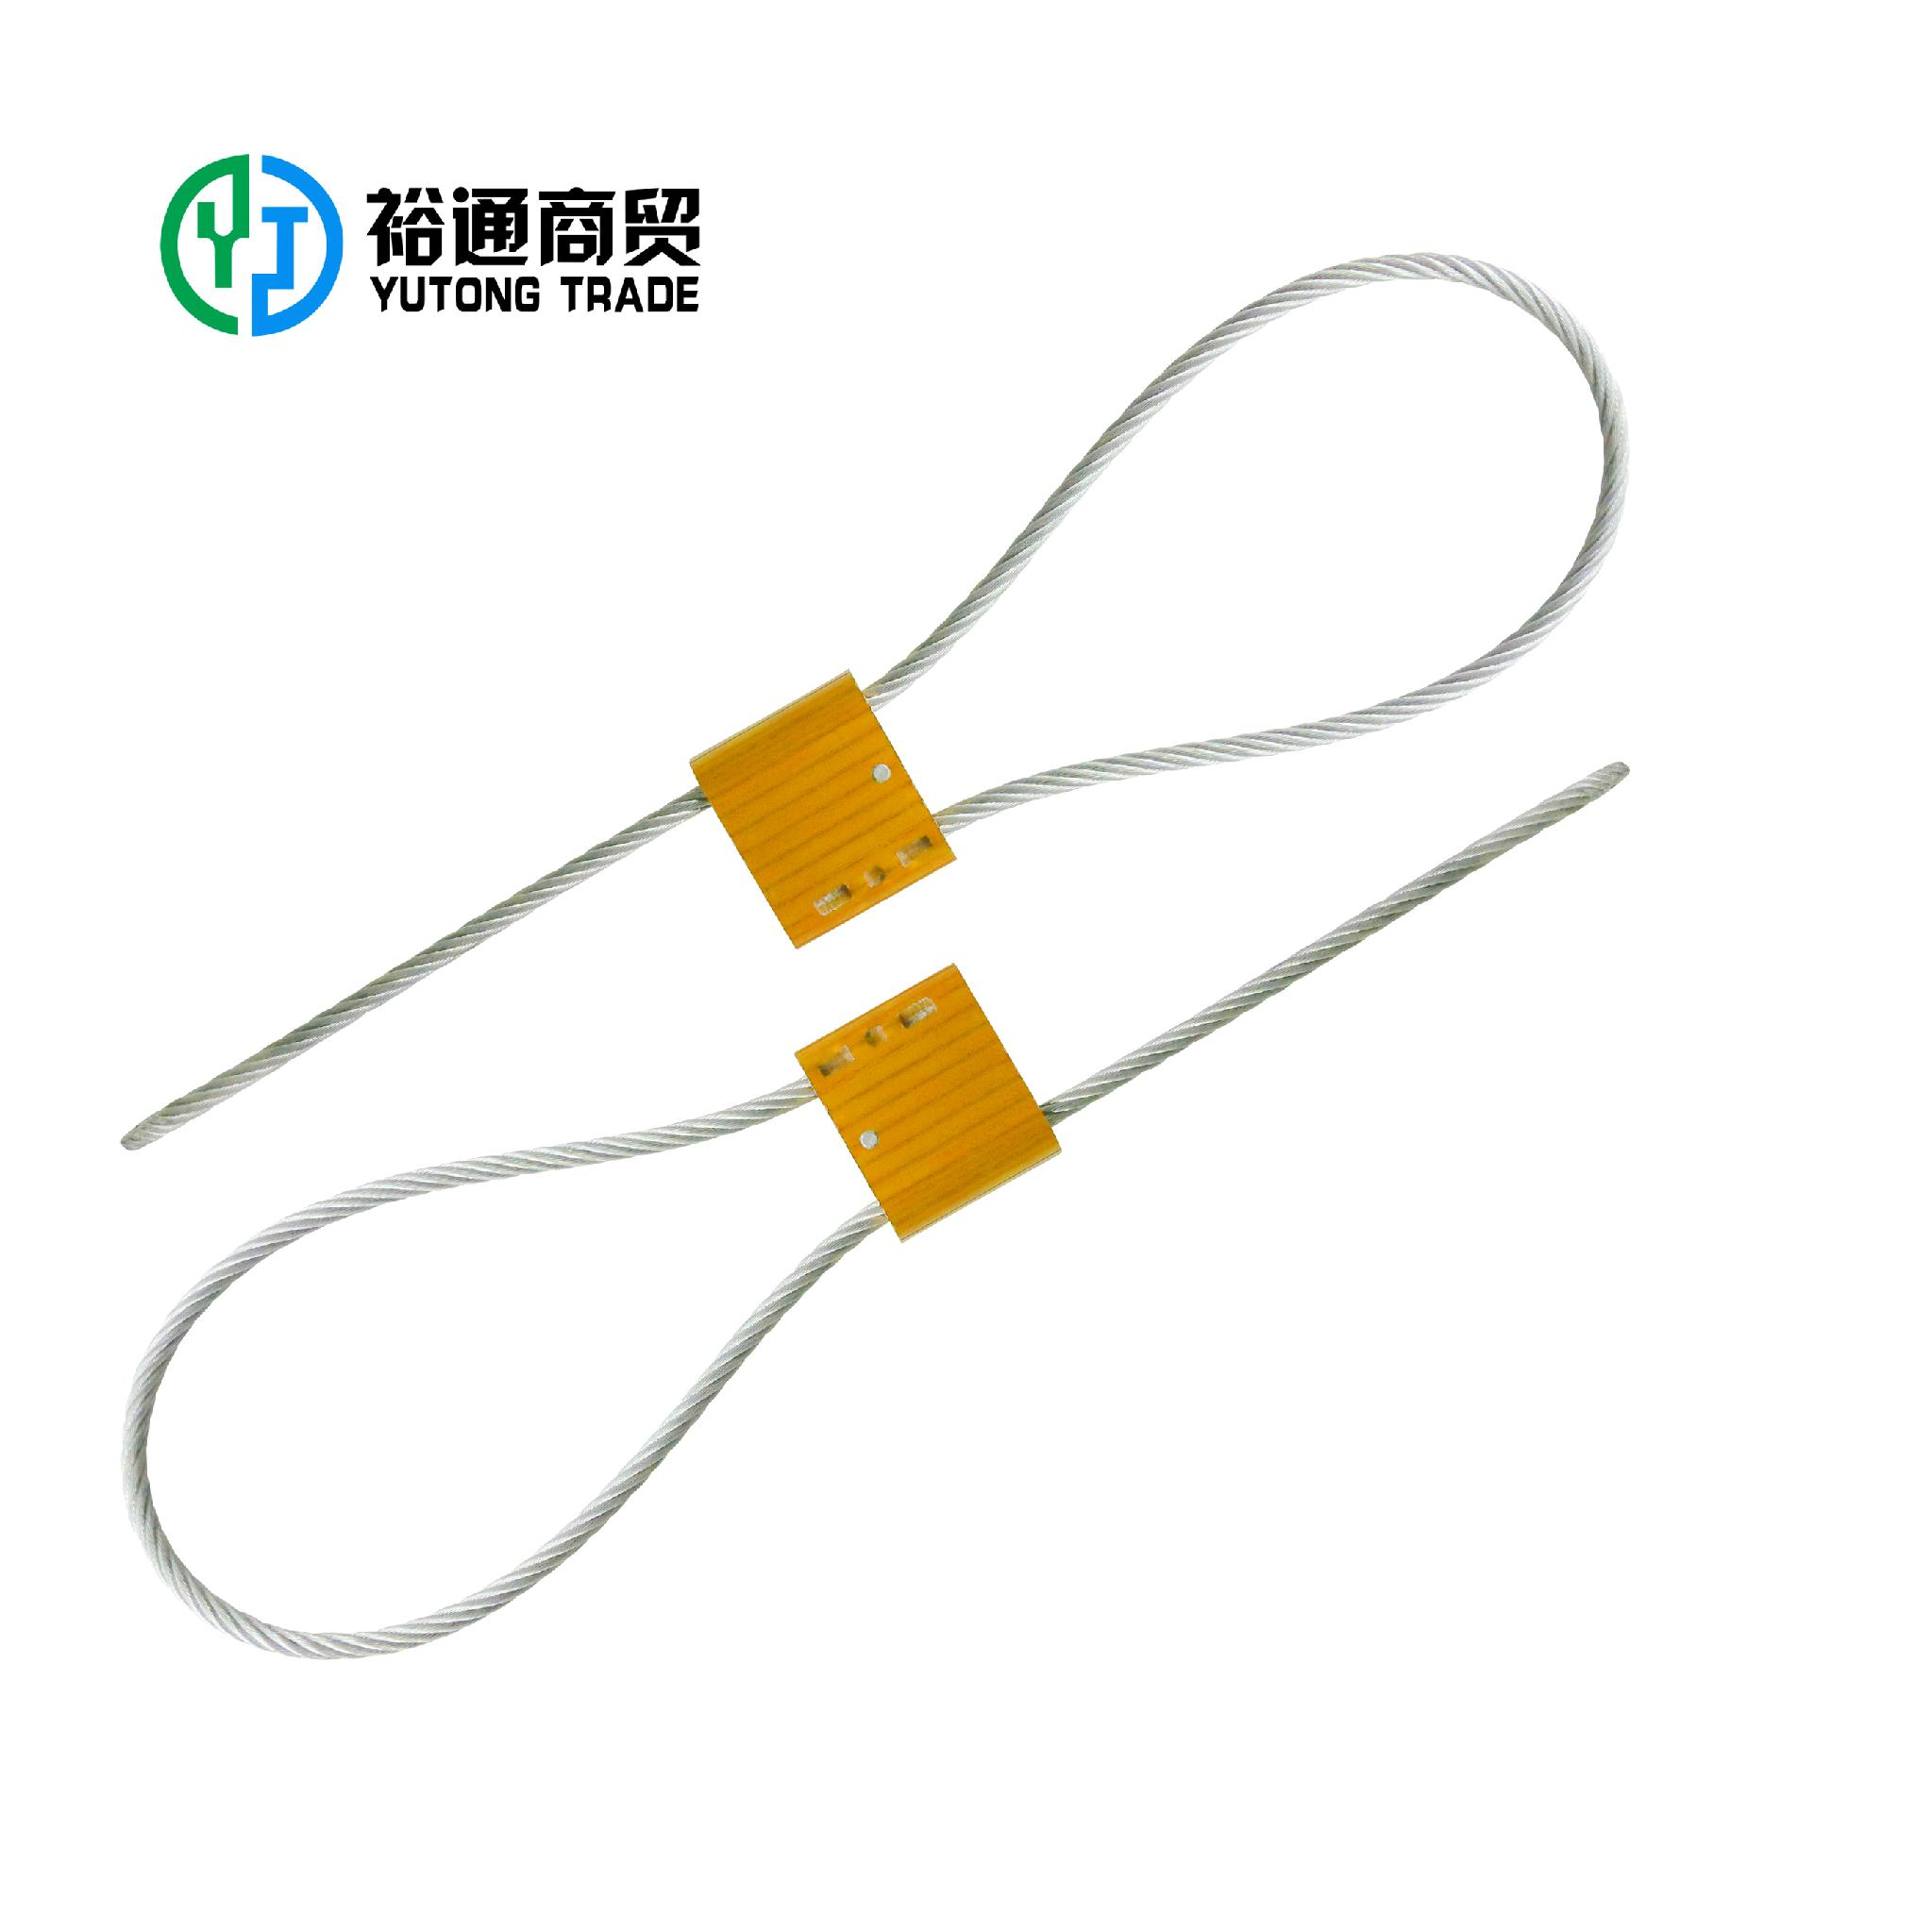 High Quality Security Cable Seal Safety Locks Container Seals 2